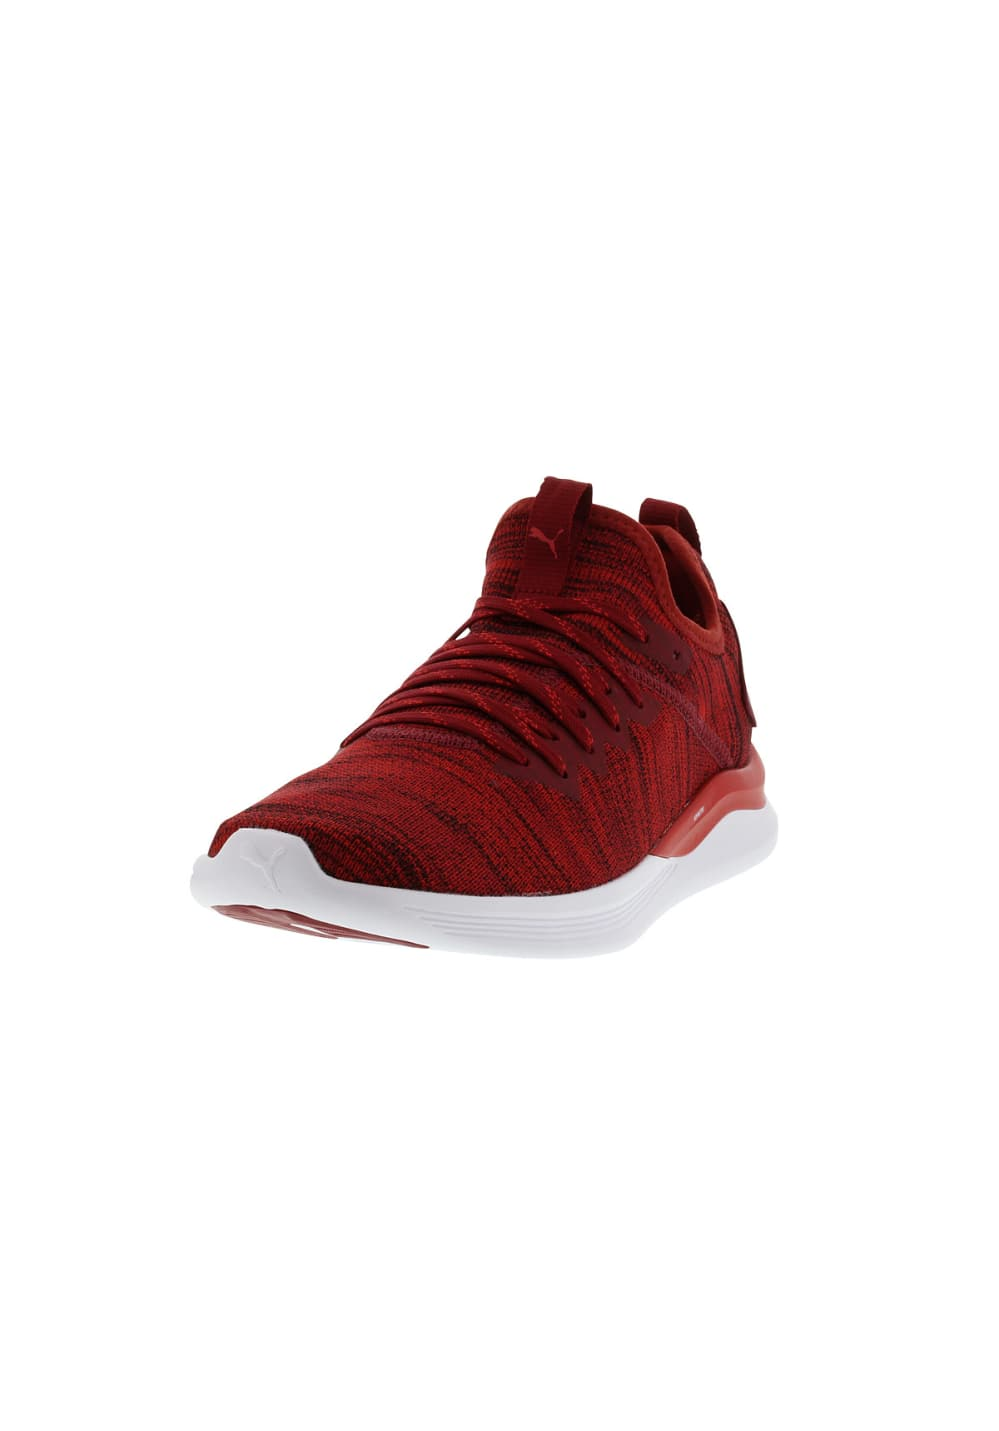 finest selection 0be16 7ed4e Puma Ignite Flash evoKNIT - Fitness shoes for Men - Red